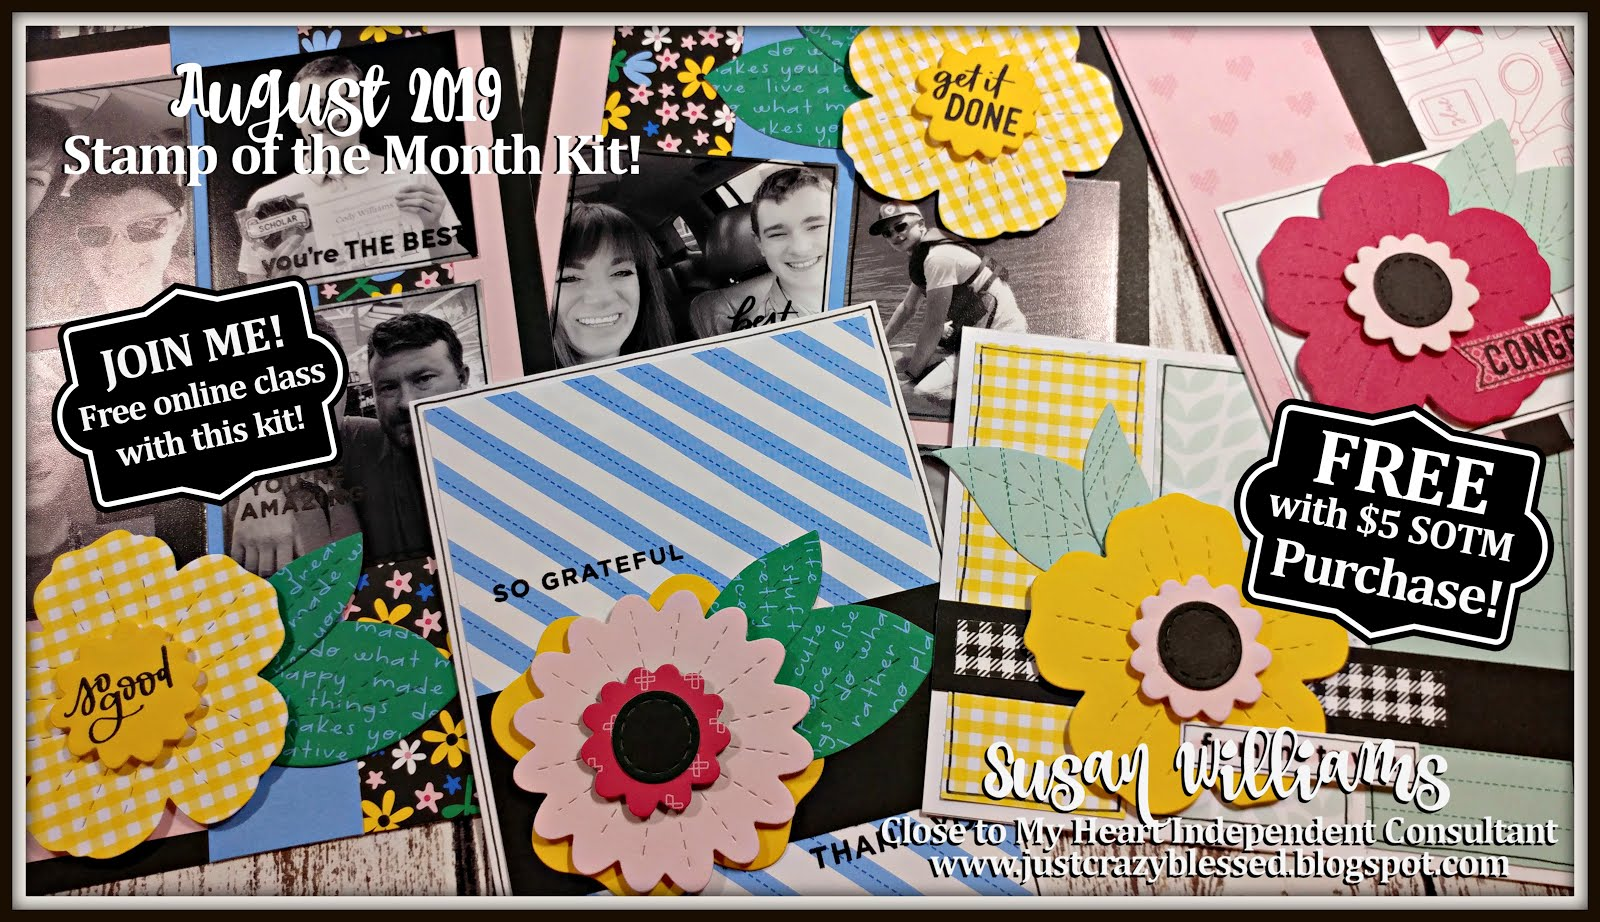 August 2019 Stamp of the Month Workshop!